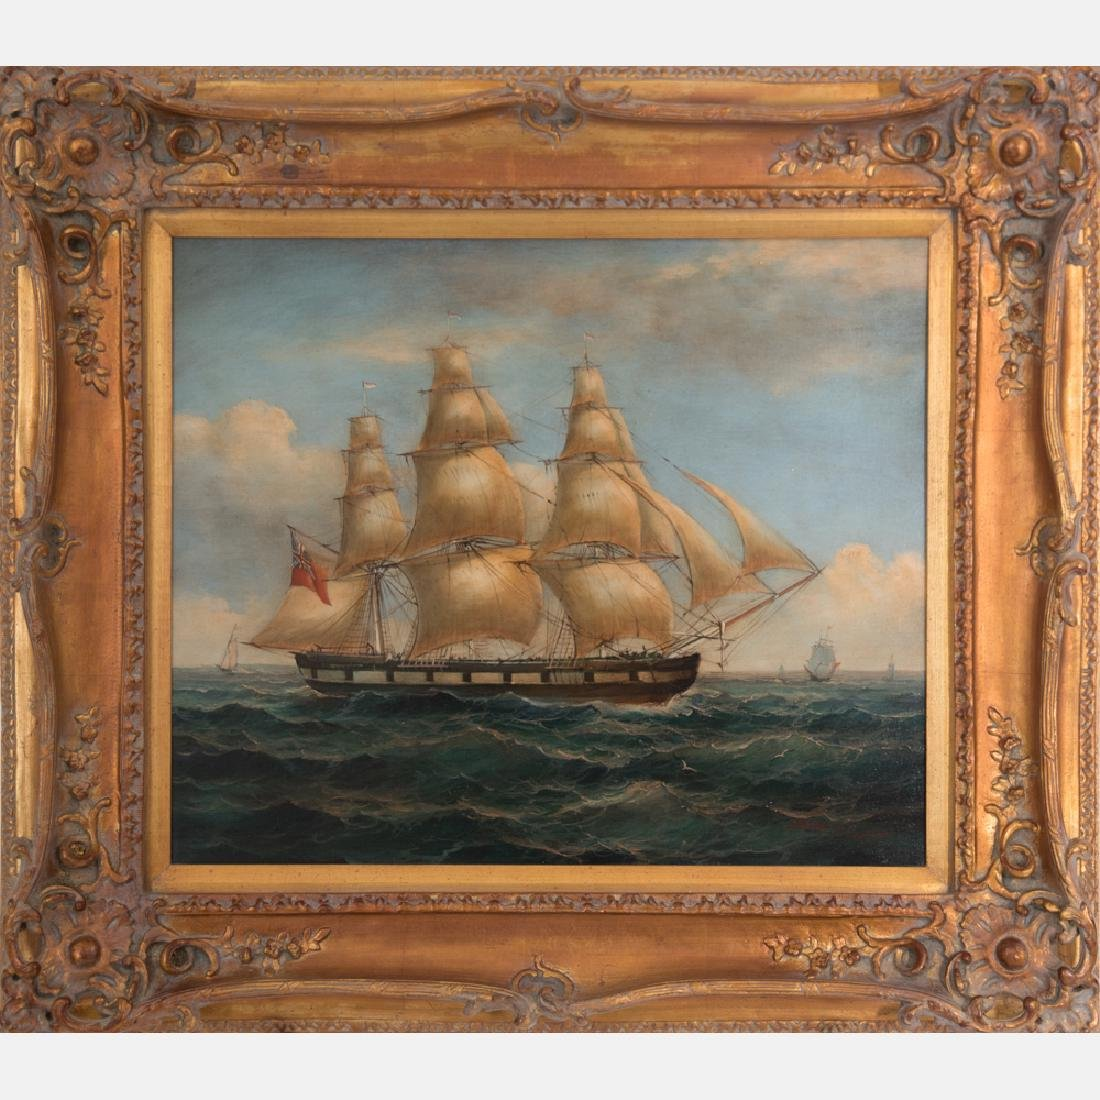 Robert Sanders (20th Century) Seascape with Tall Ships,